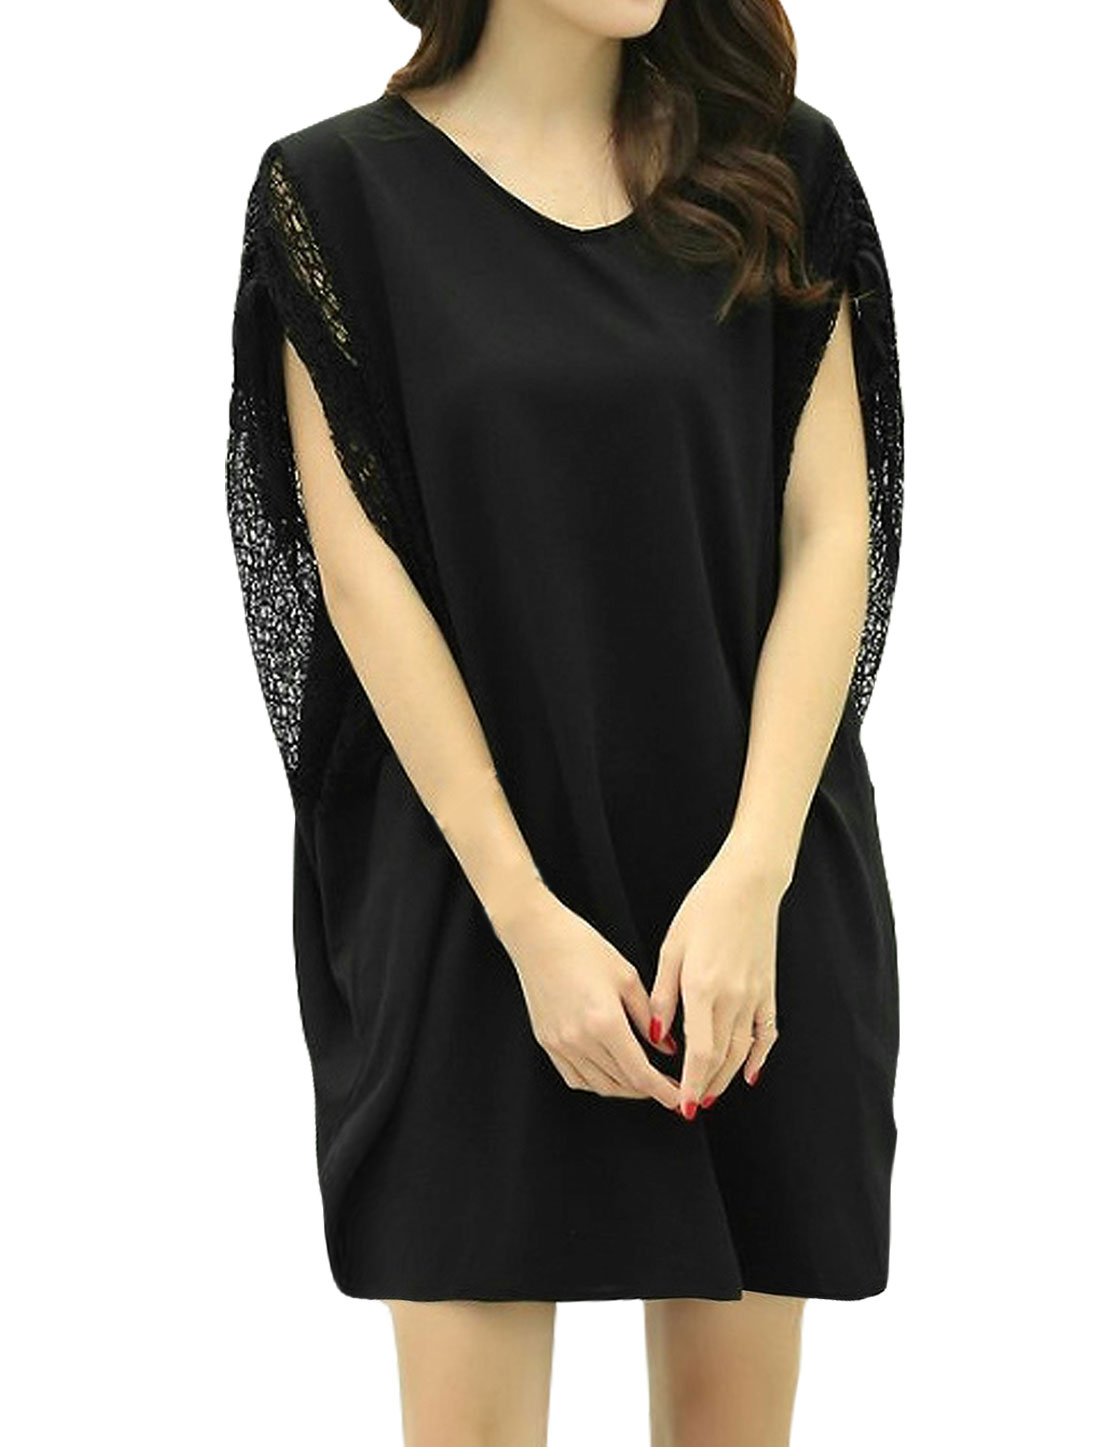 Woman Batwing Self Tie Design Mesh Loose Tunic Top Black XS